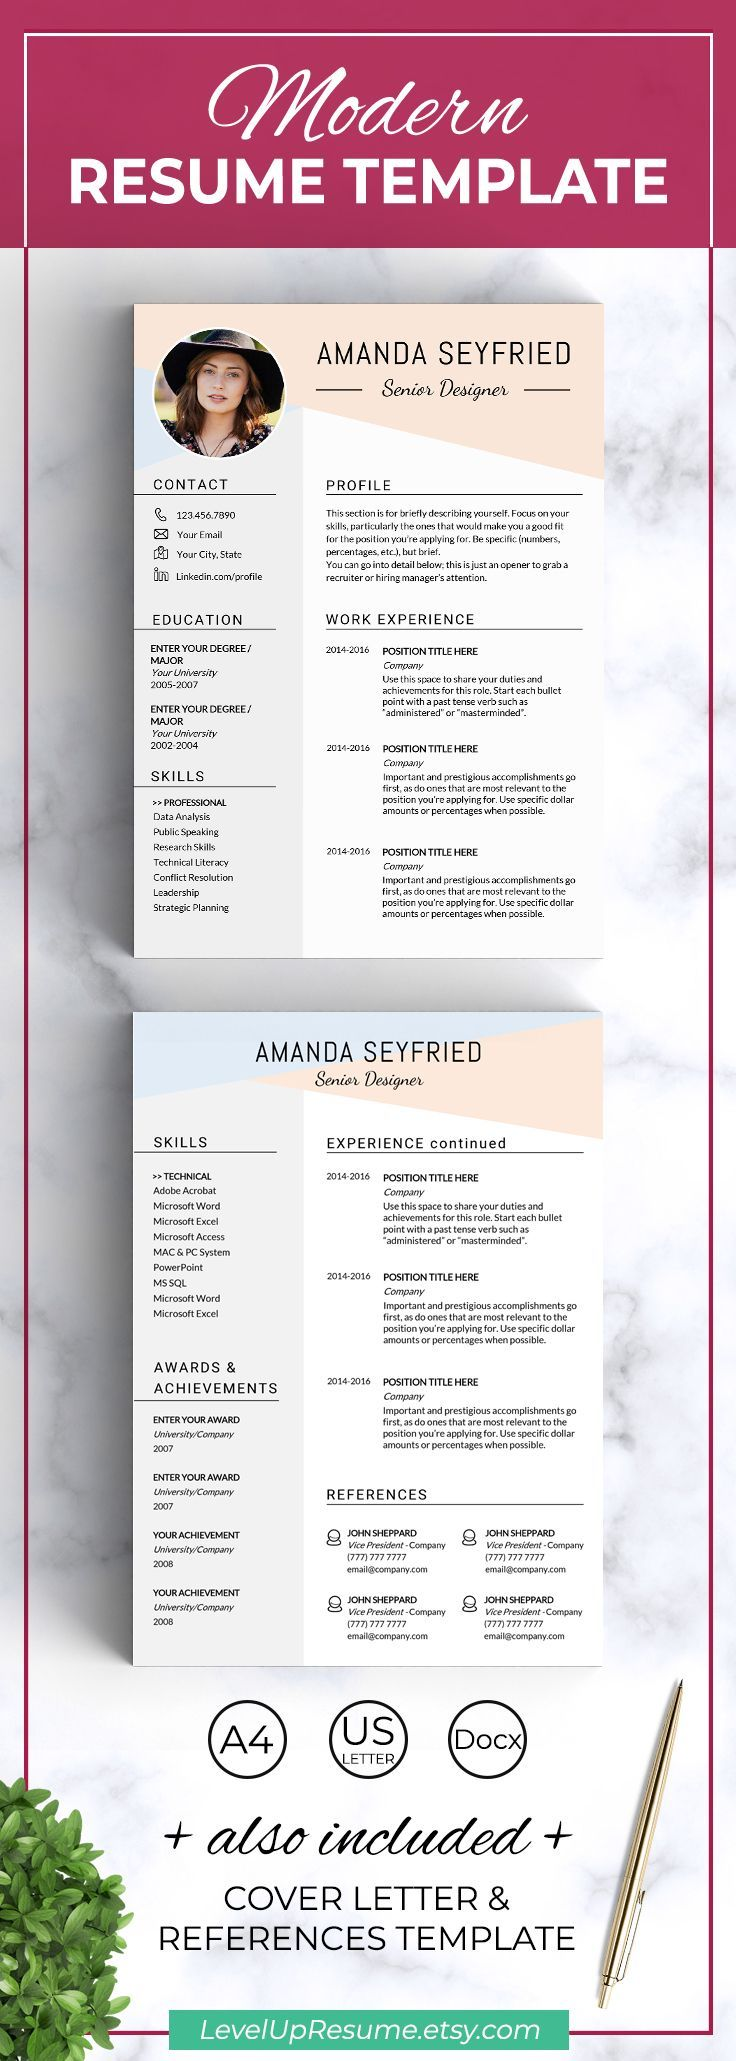 206 best Resume images on Pinterest | Resume templates, Cv resume ...